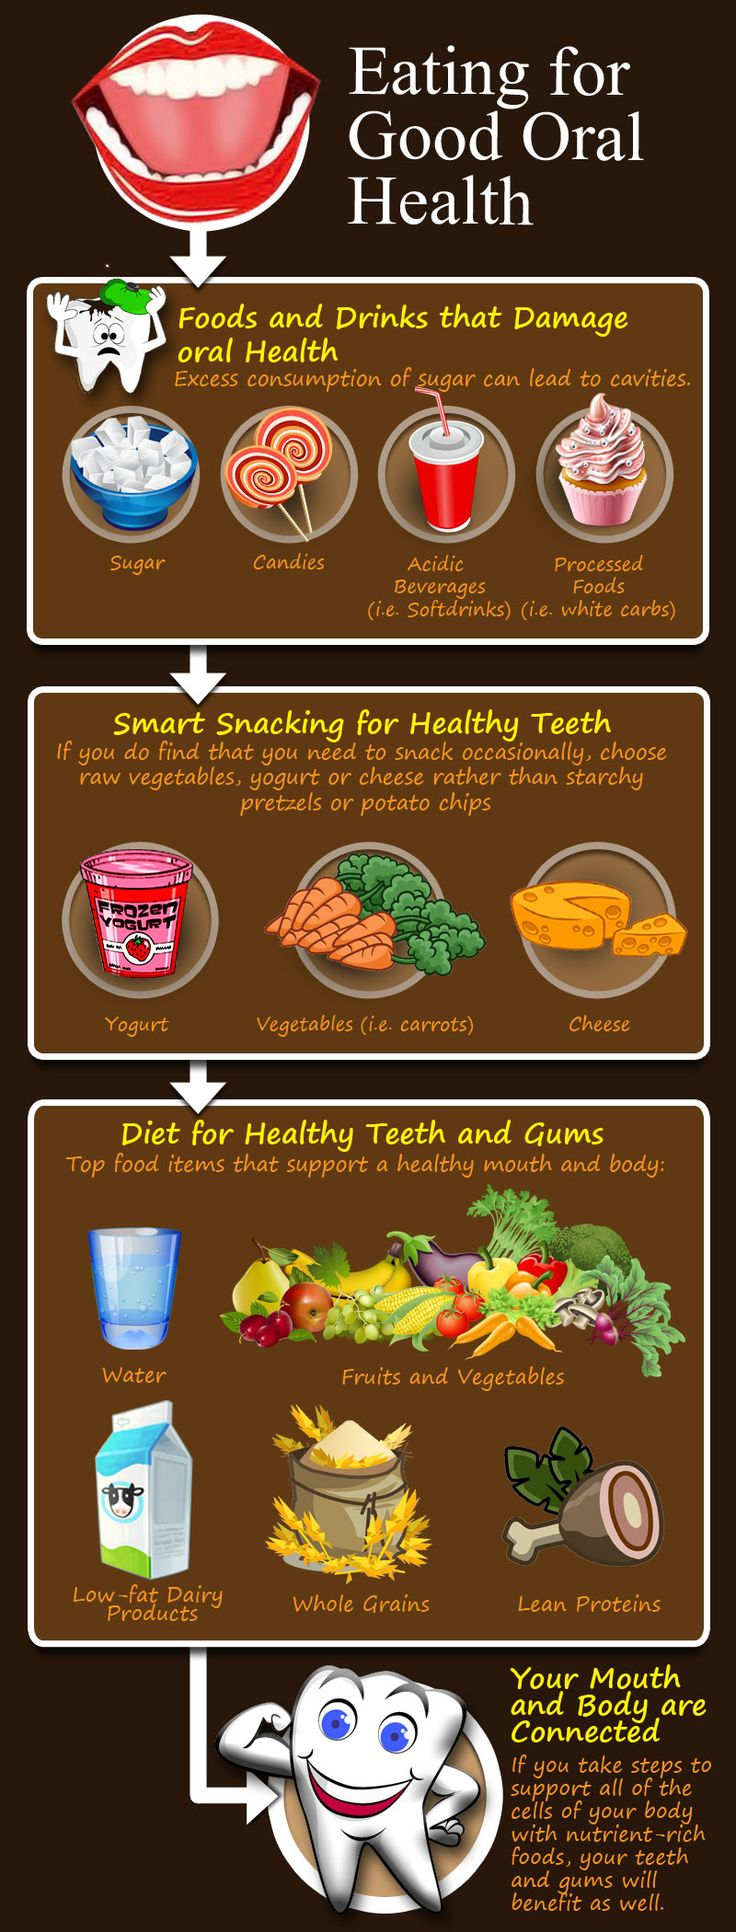 Eating for Good Oral Health